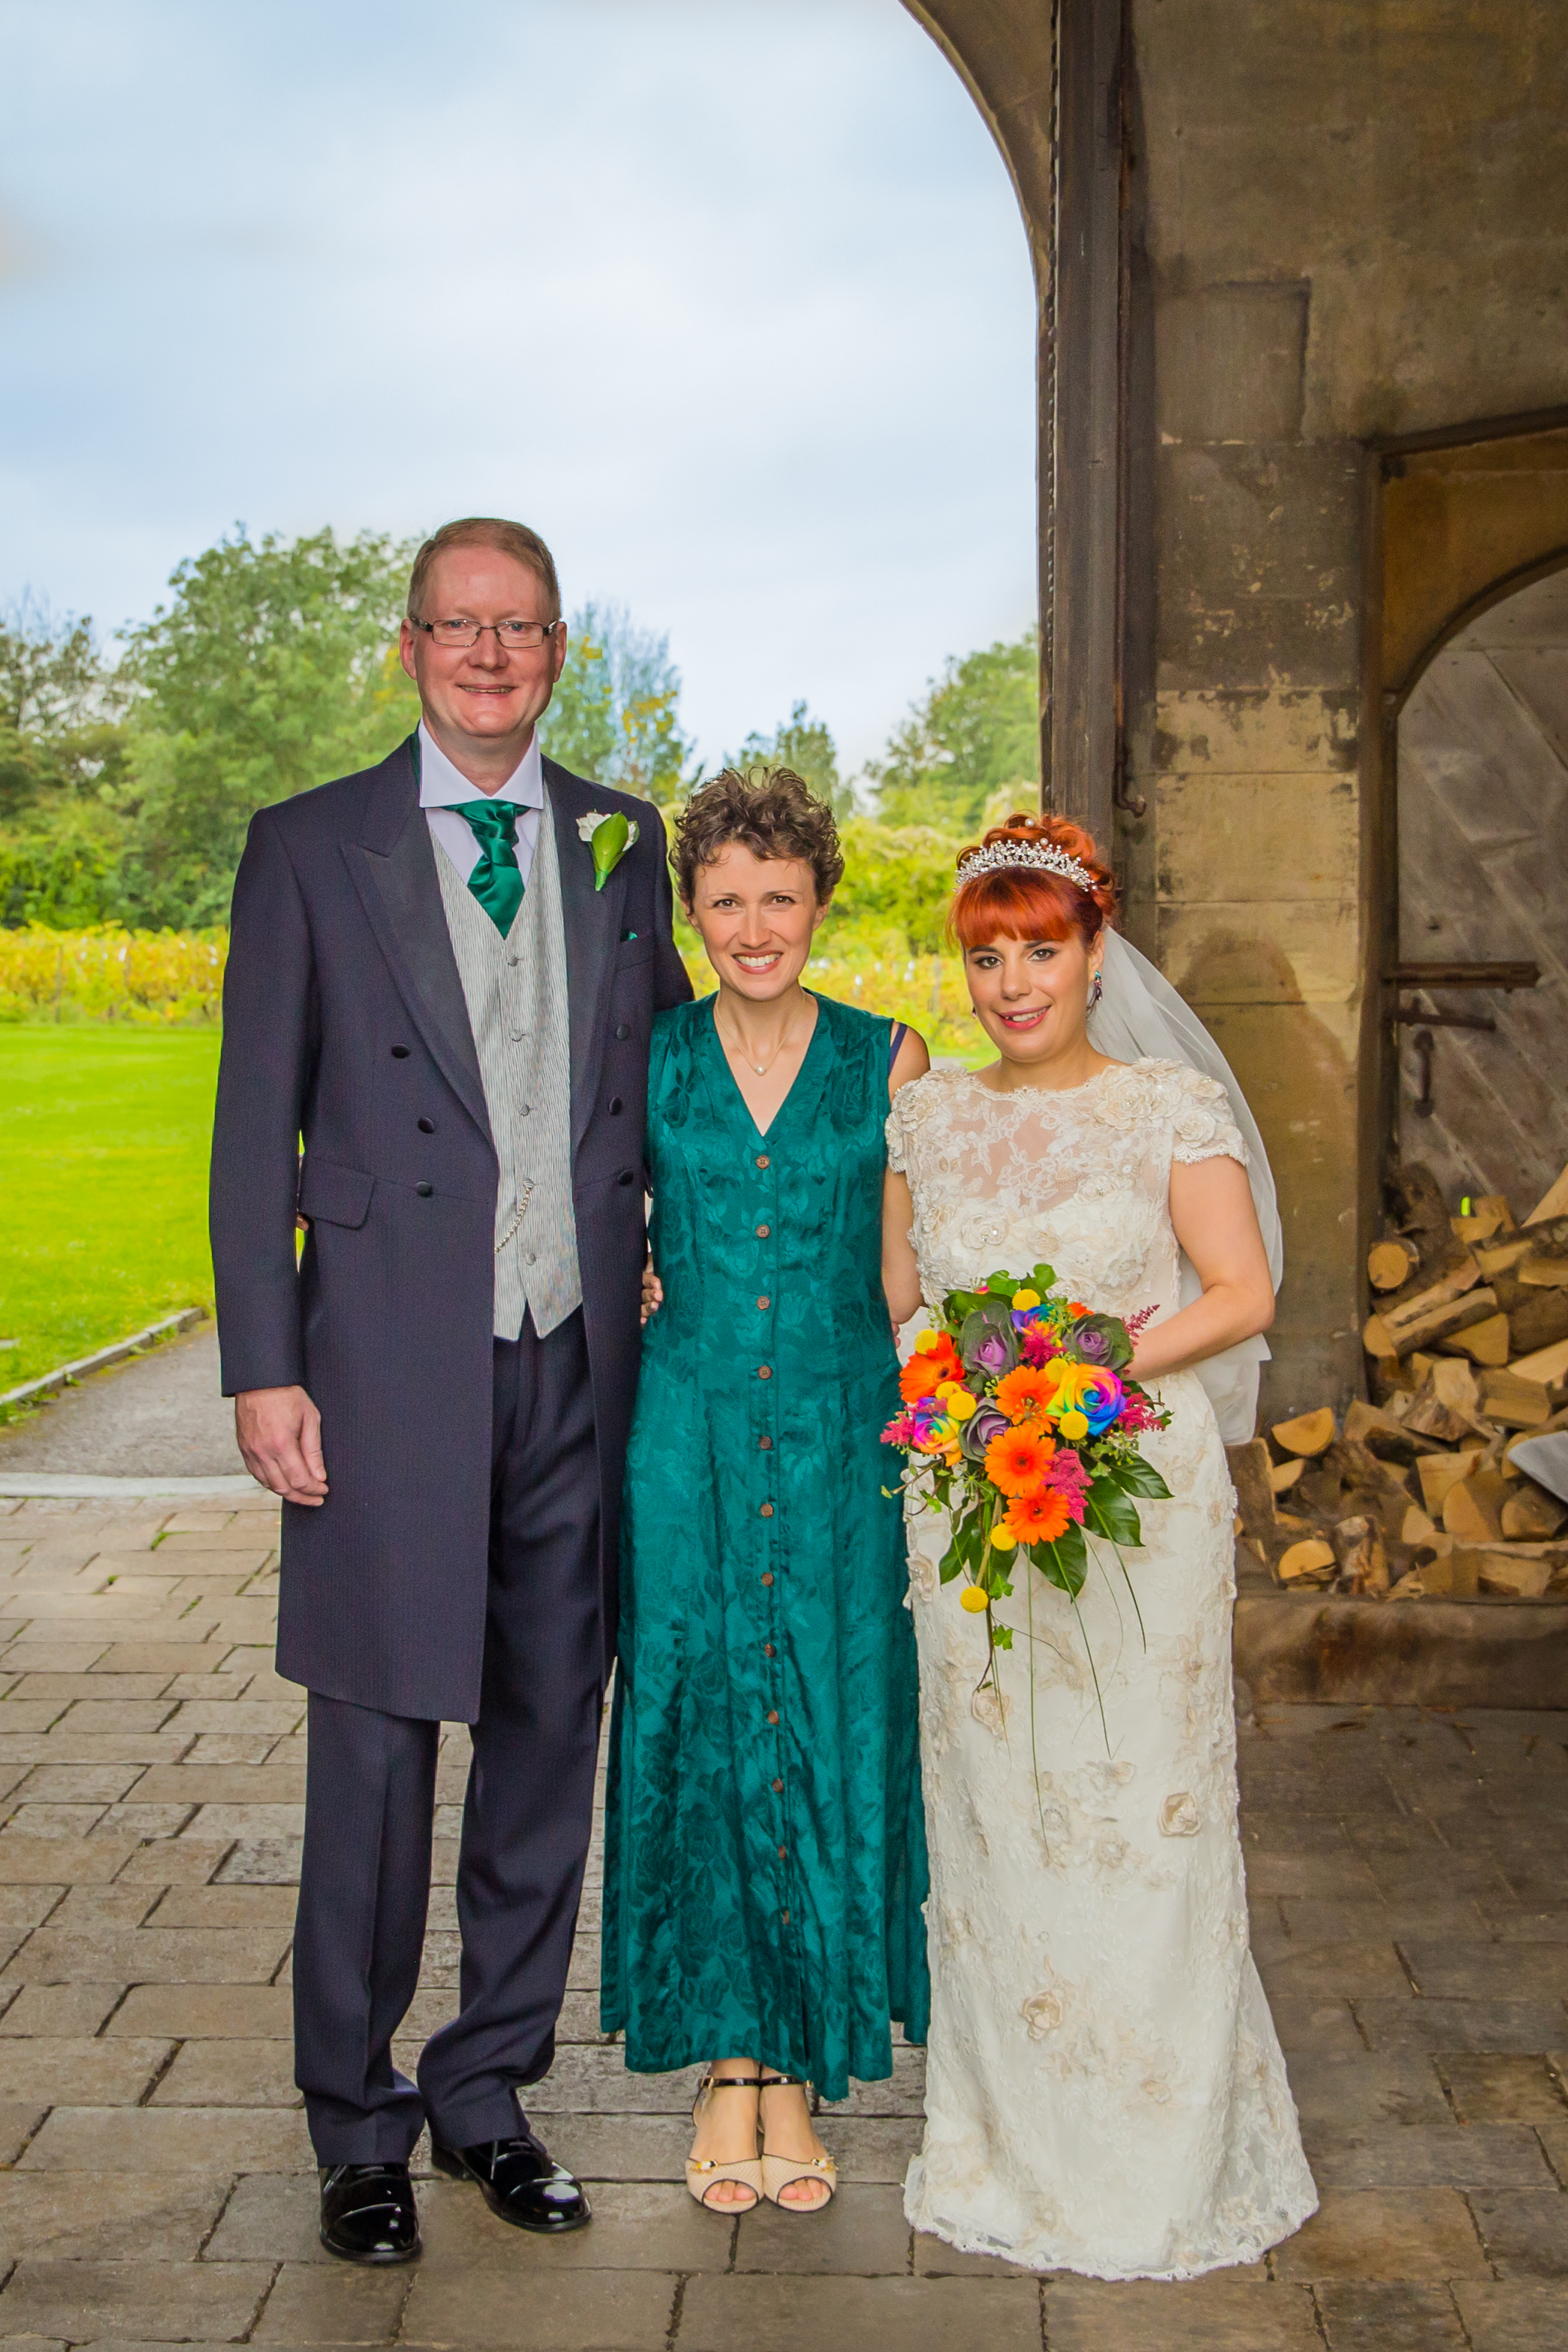 Wedding Celebrant Keli Tomlin stands with a bride and groom in the entrance to Thornbury Castle. The sky showing behind them is cloudy, the bride is carrying a brightly coloured bouquet.